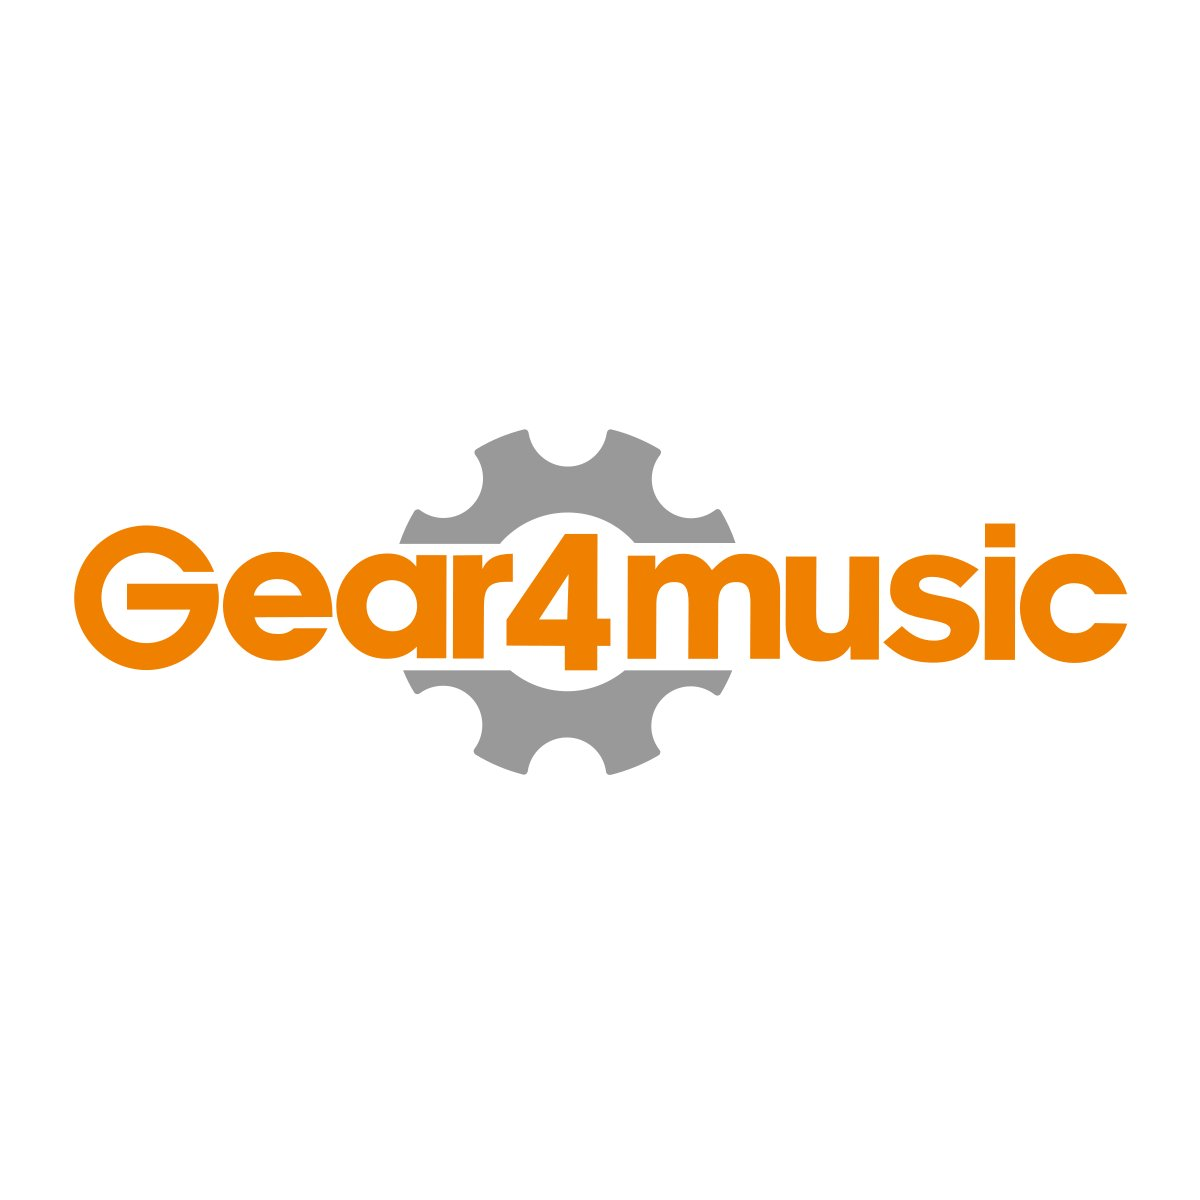 Tamburello a forma di D Gear4music Bianco